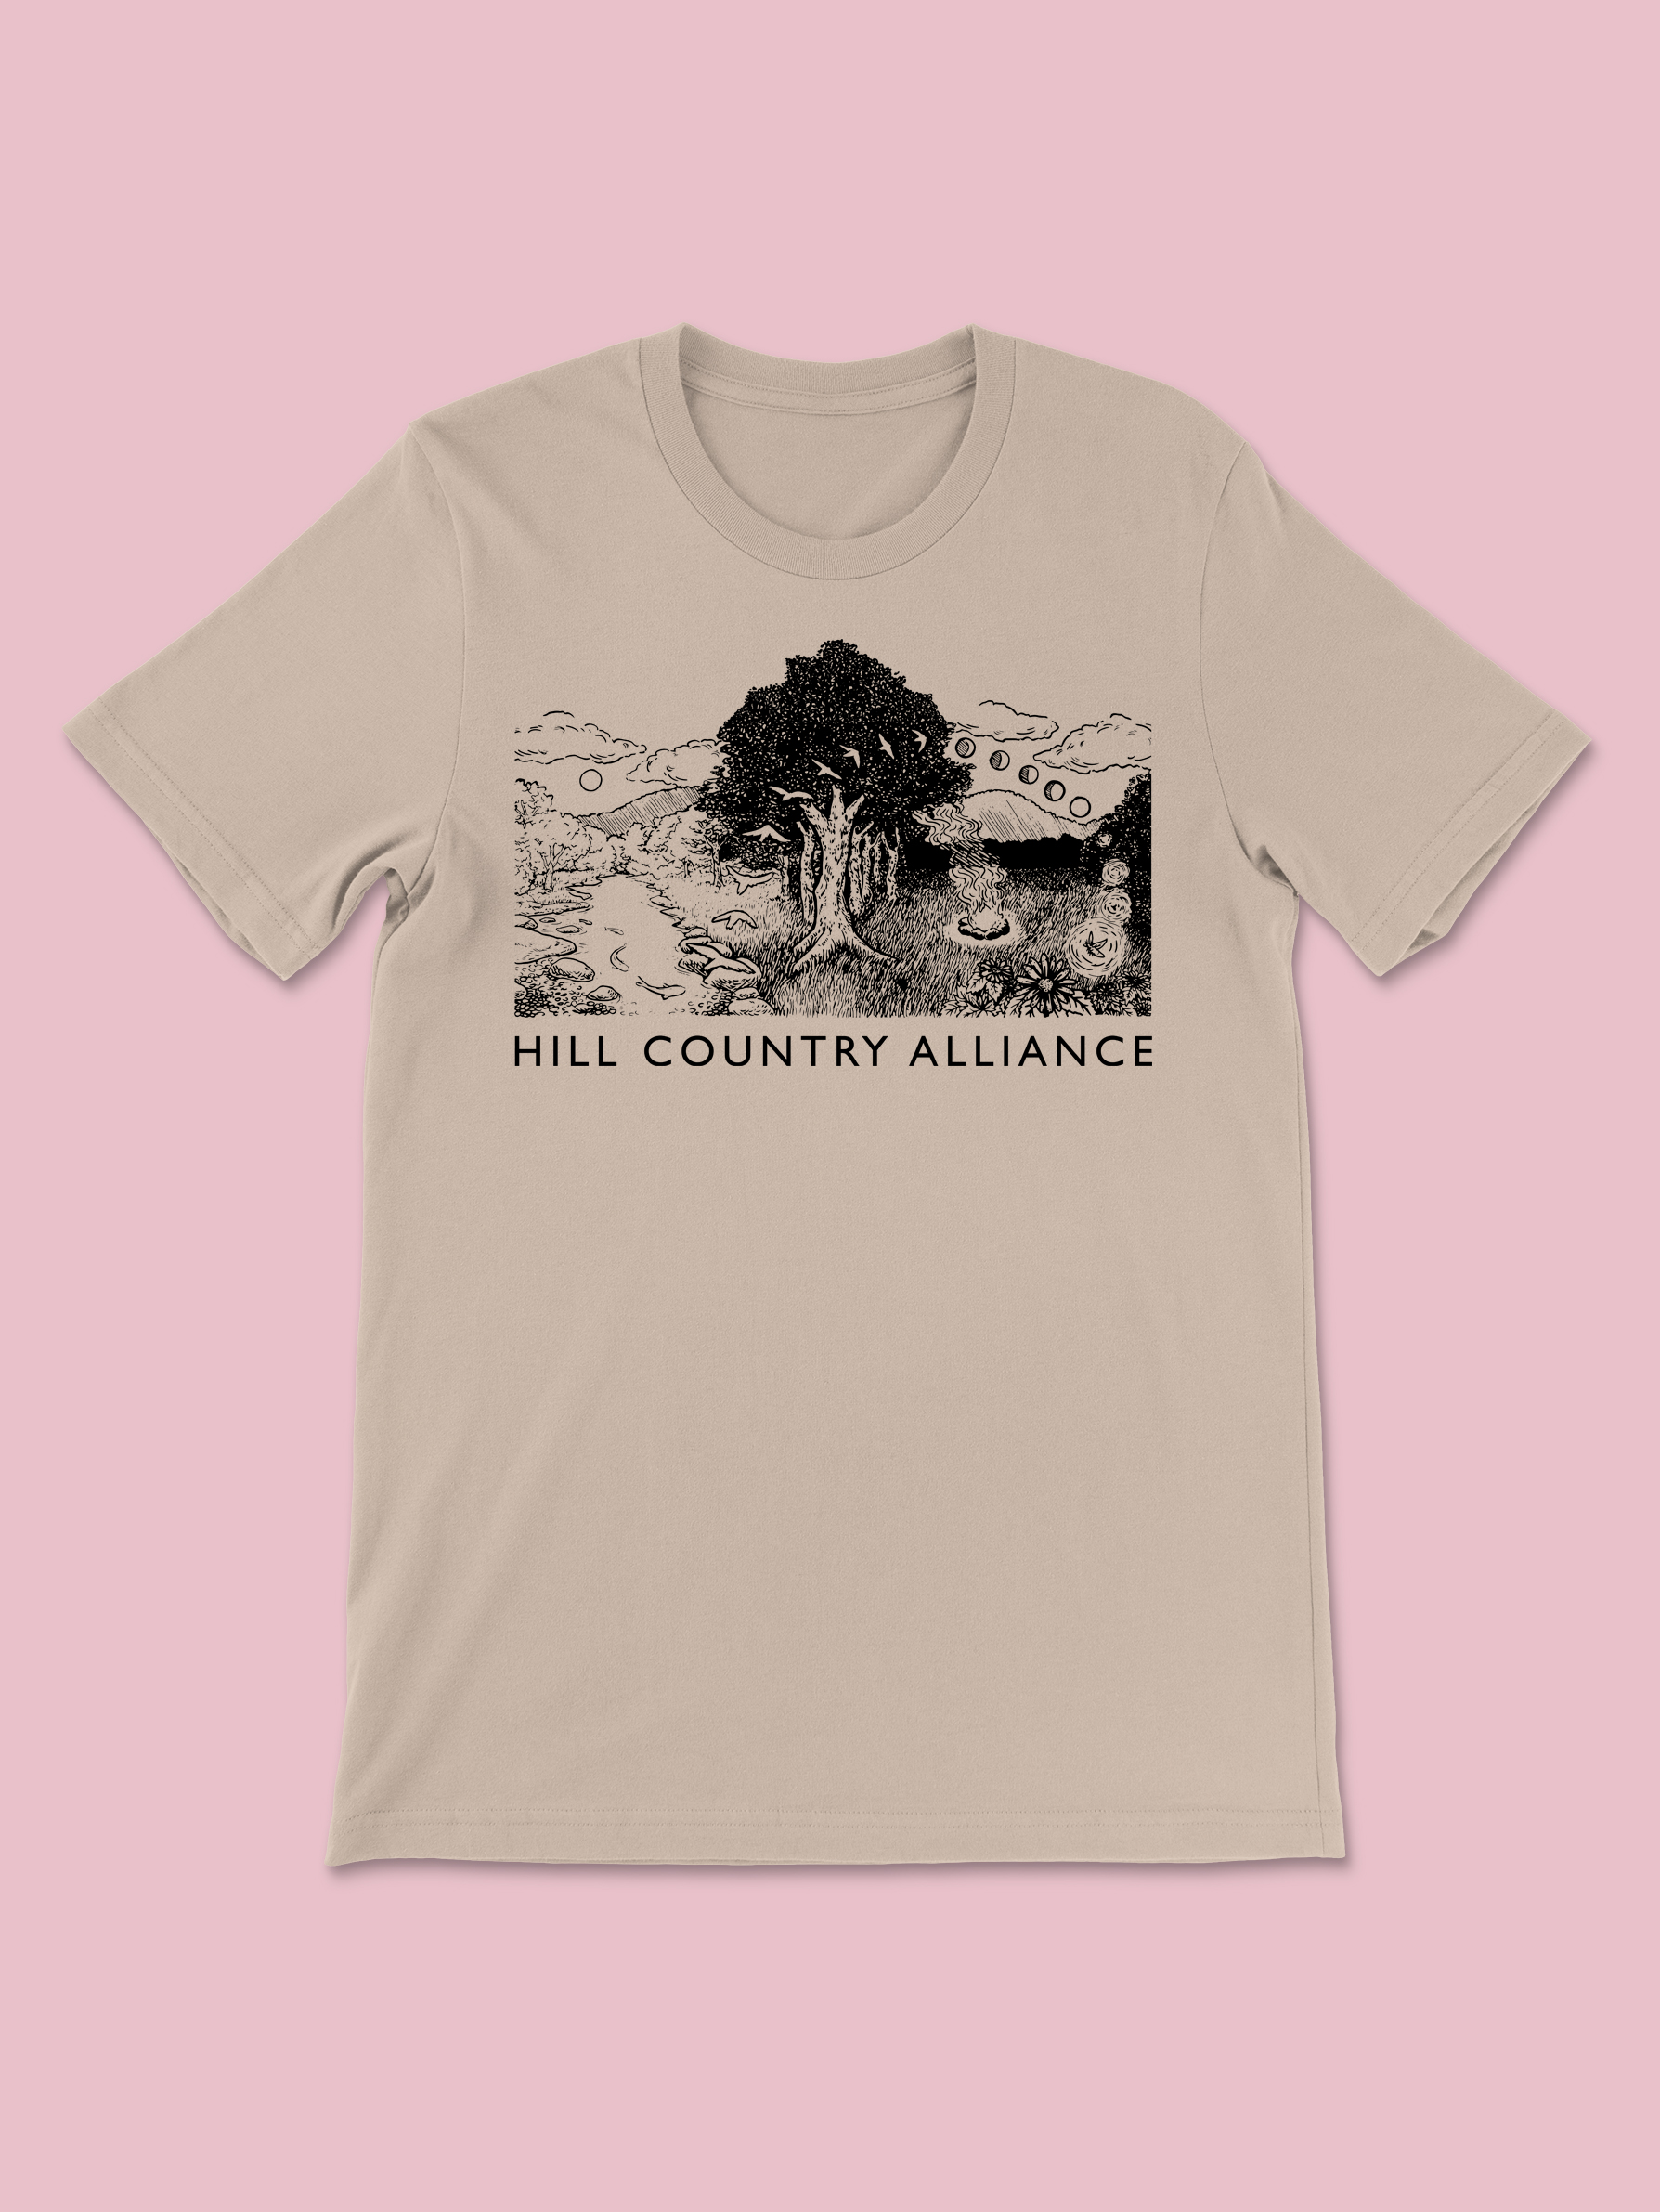 HCA Limited Edition Tan Shirt Design 2021 - Featuring A River, Tree, And Evening Campfire Scene